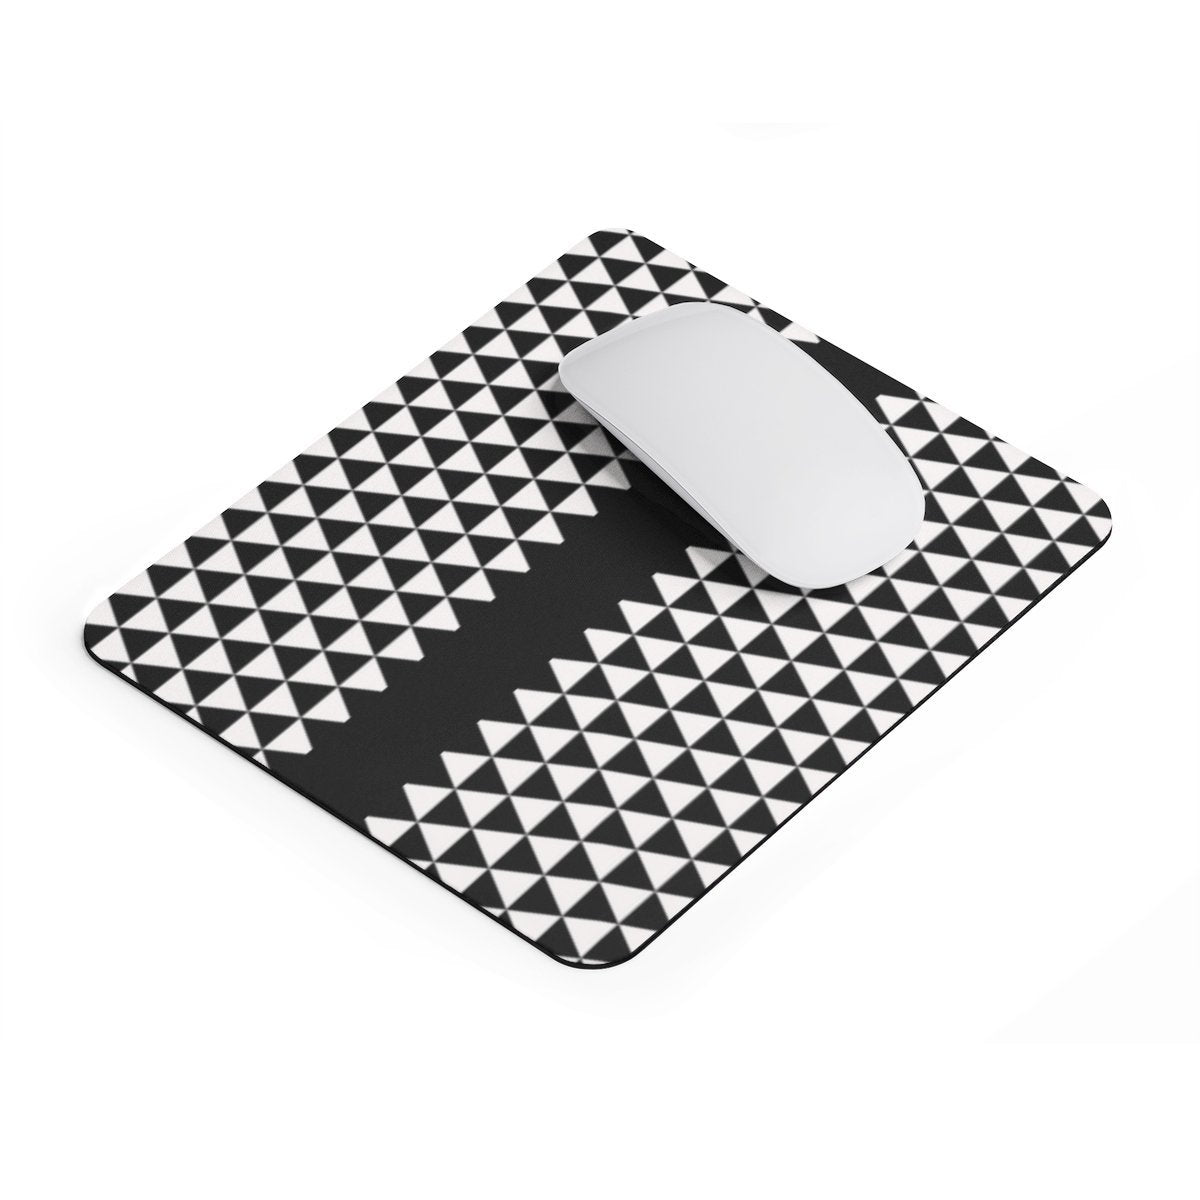 B/W rectangular Mouse pad-Home Decor-Maison d'Elite-Rectangle-Très Elite